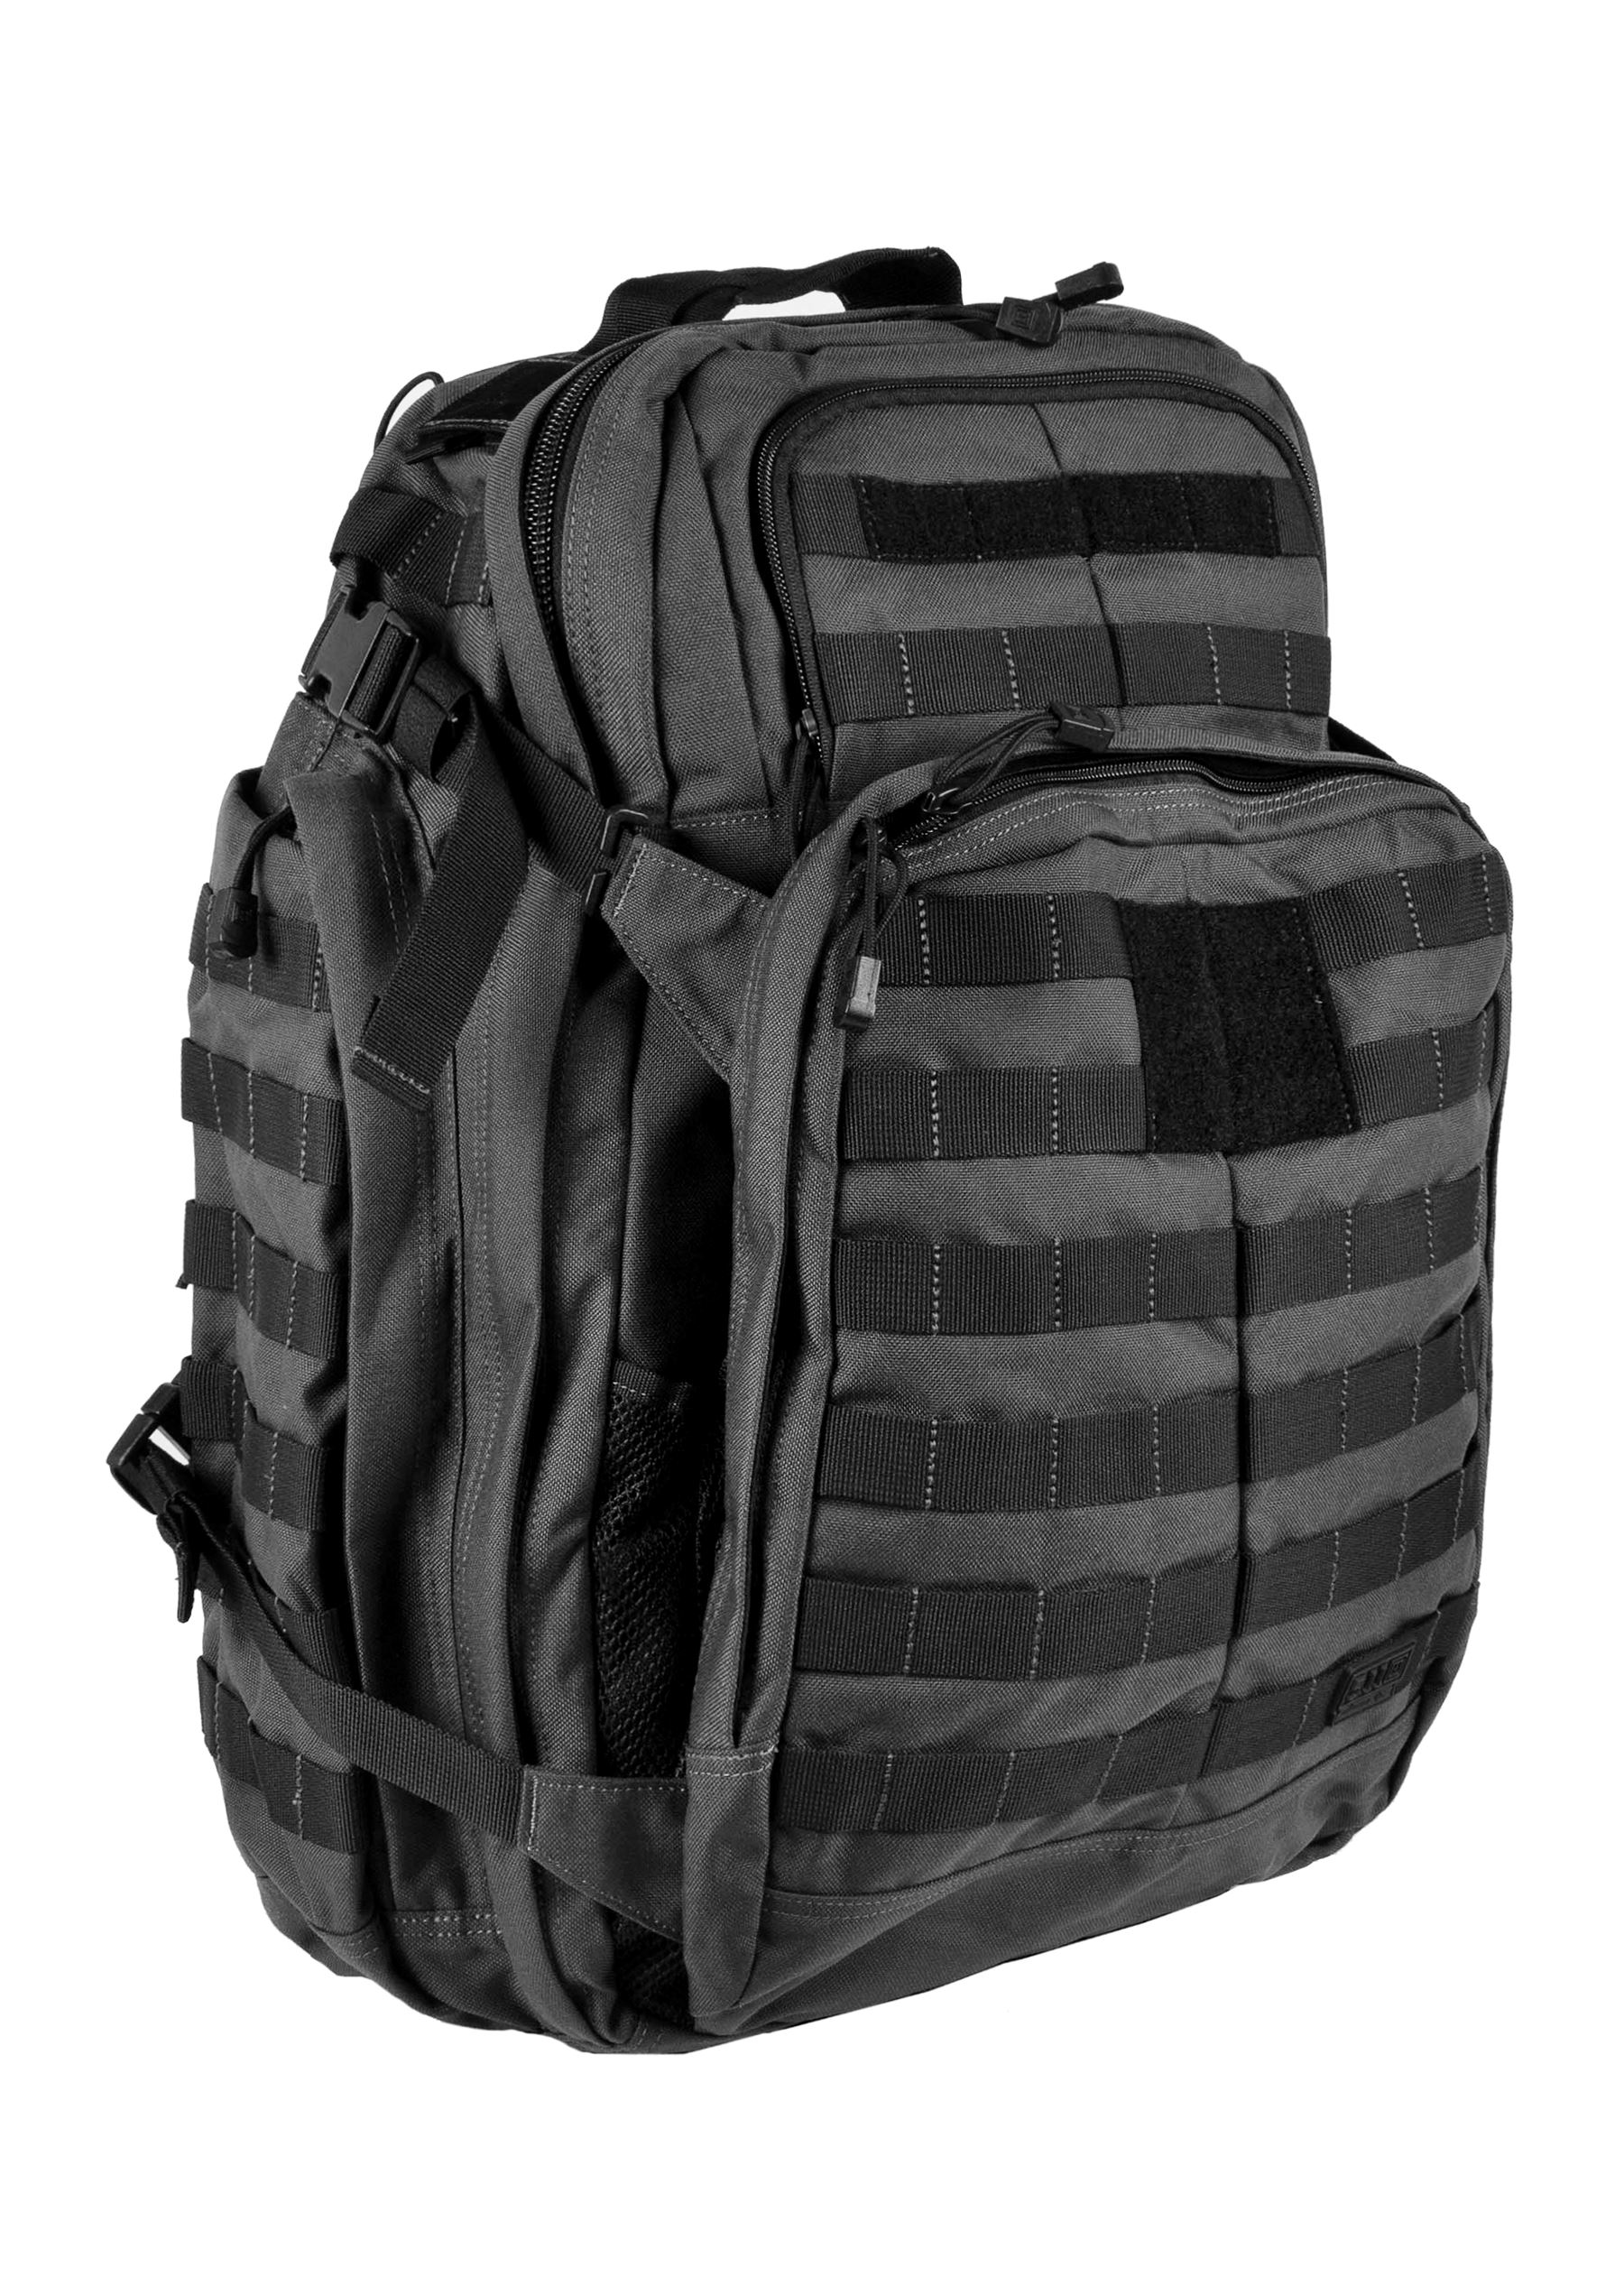 5.11 Tactical Rush72 rygsæk i double tap